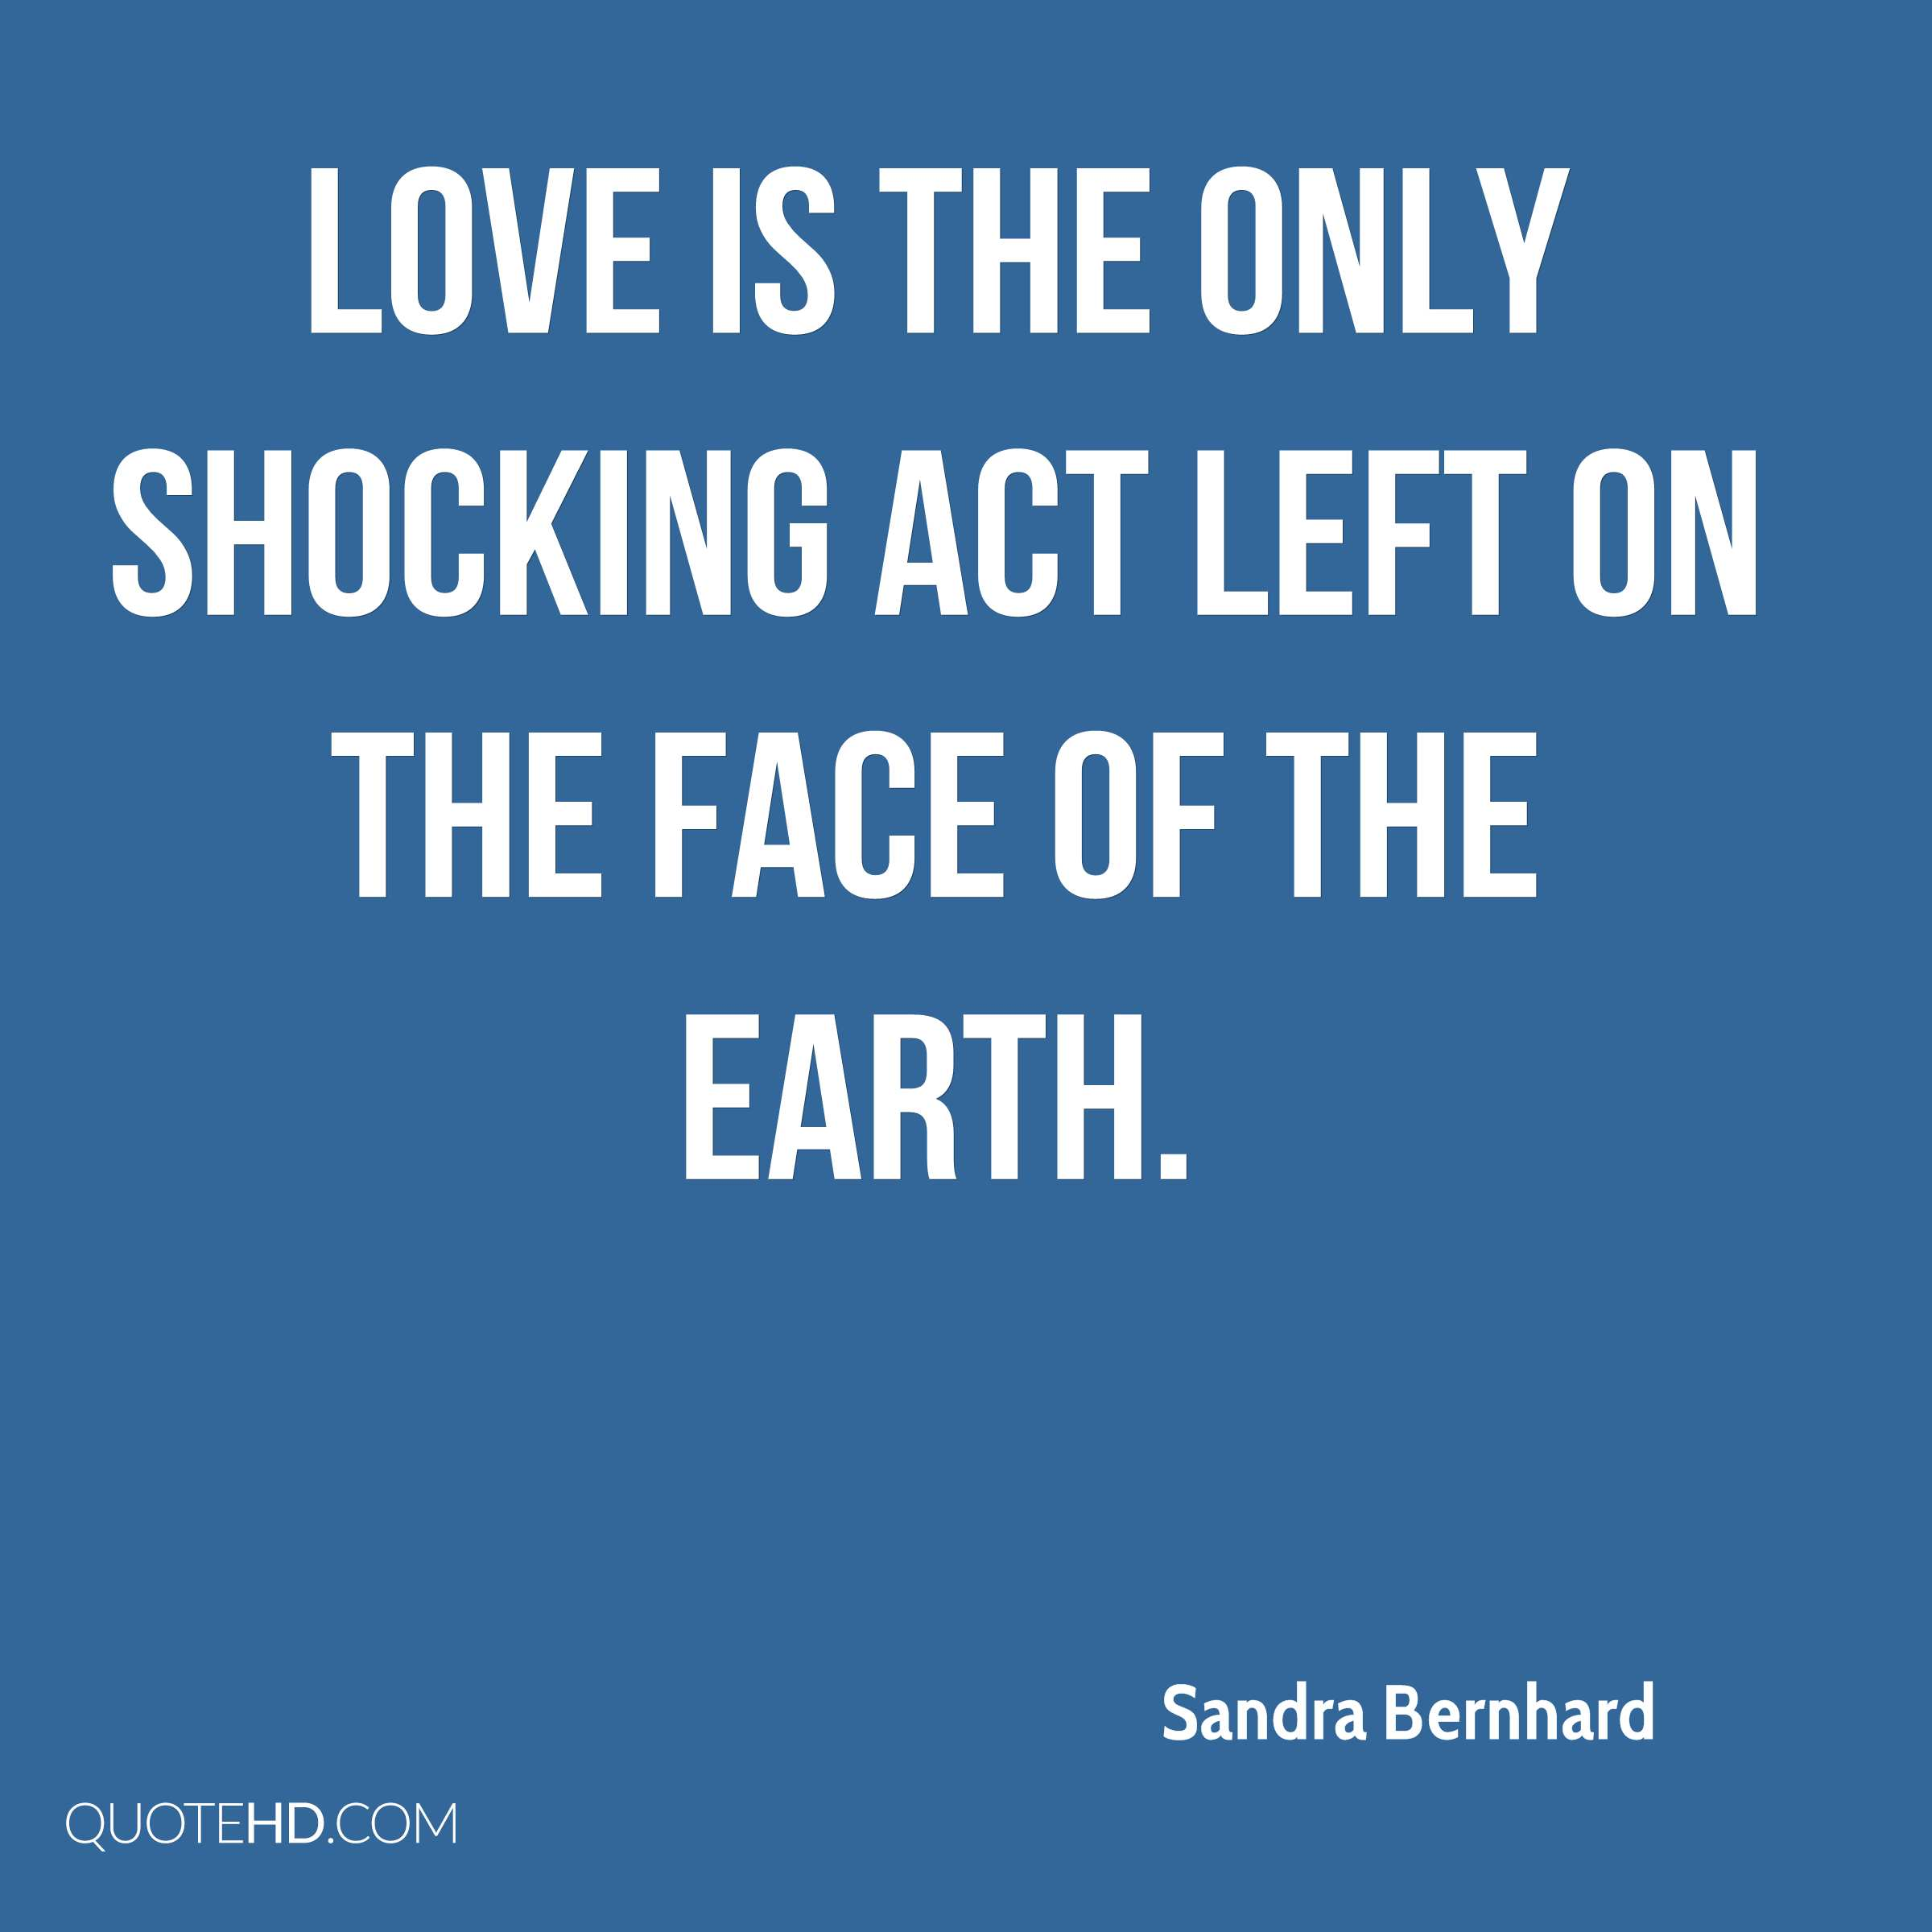 Love is the only shocking act left on the face of the earth.